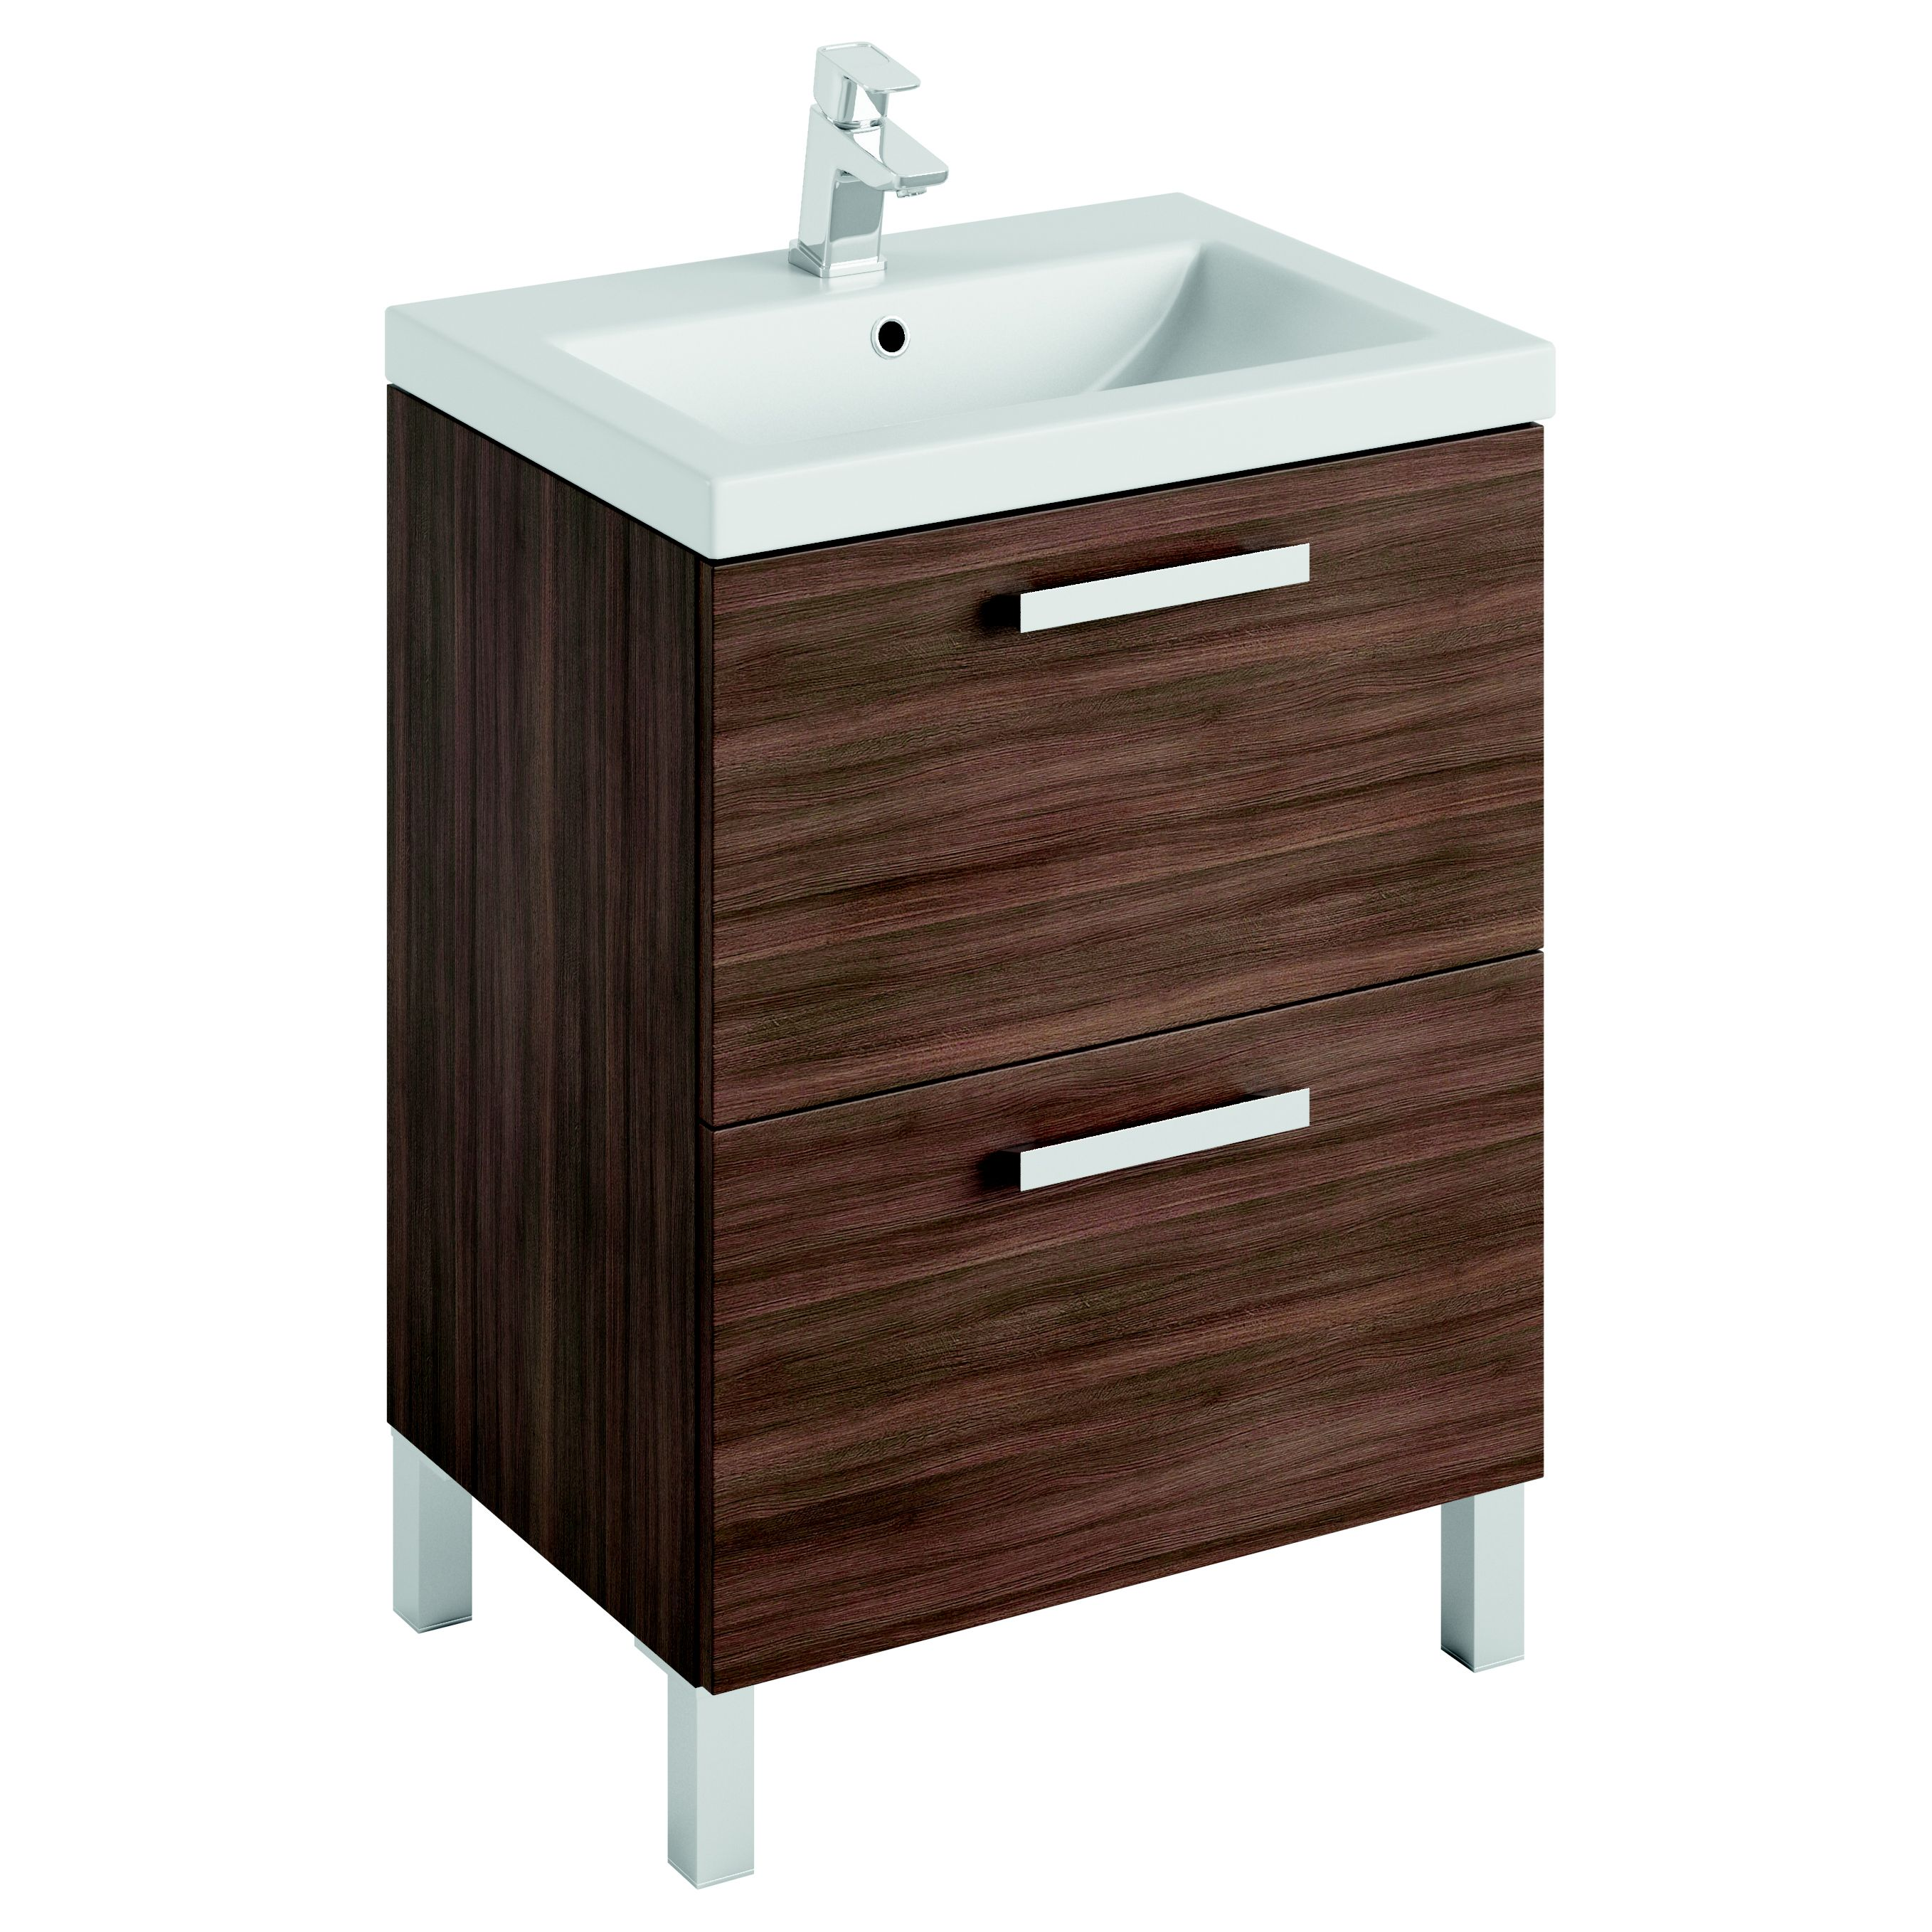 Bathroom Sinks B&Q cooke & lewis romana walnut effect vanity unit & basin set